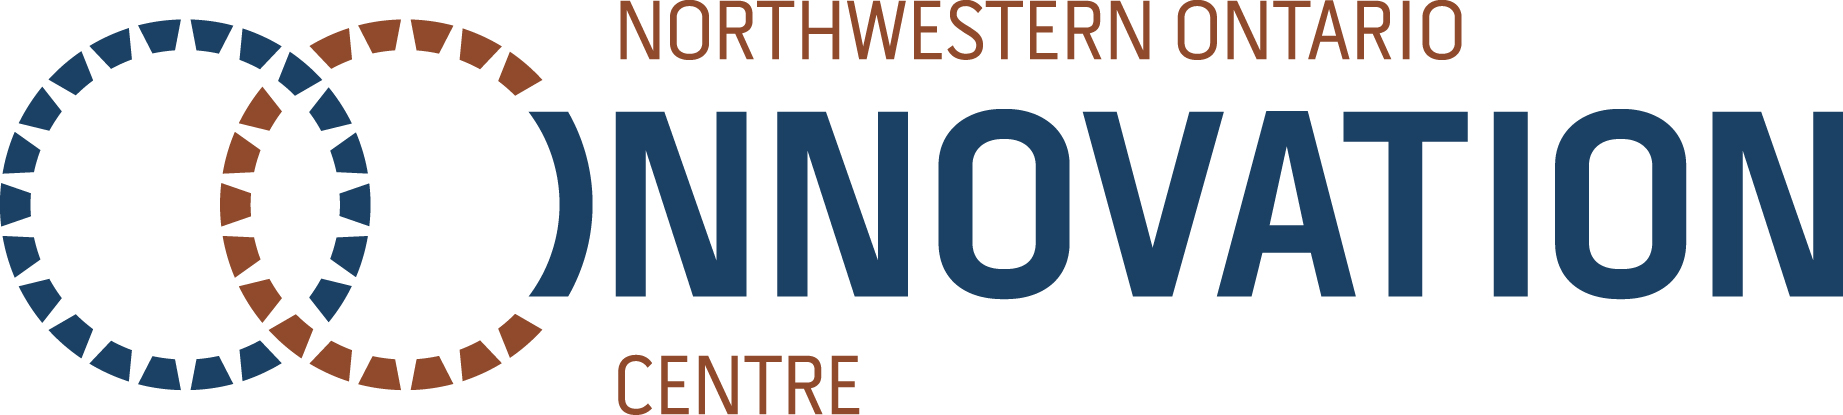 Northwestern Ontario Innovation Centre Logo